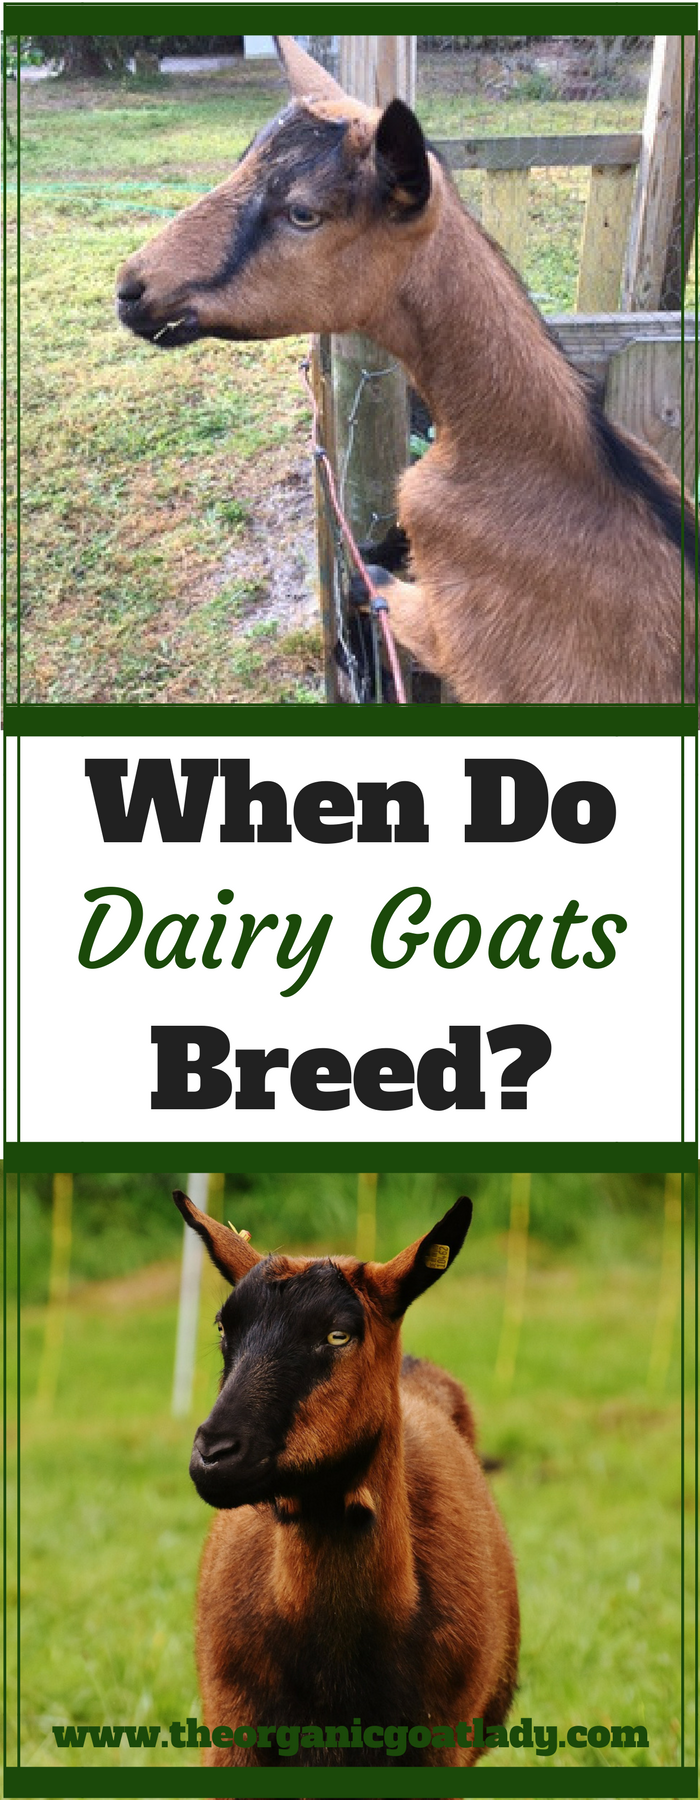 When Do Dairy Goats Breed?